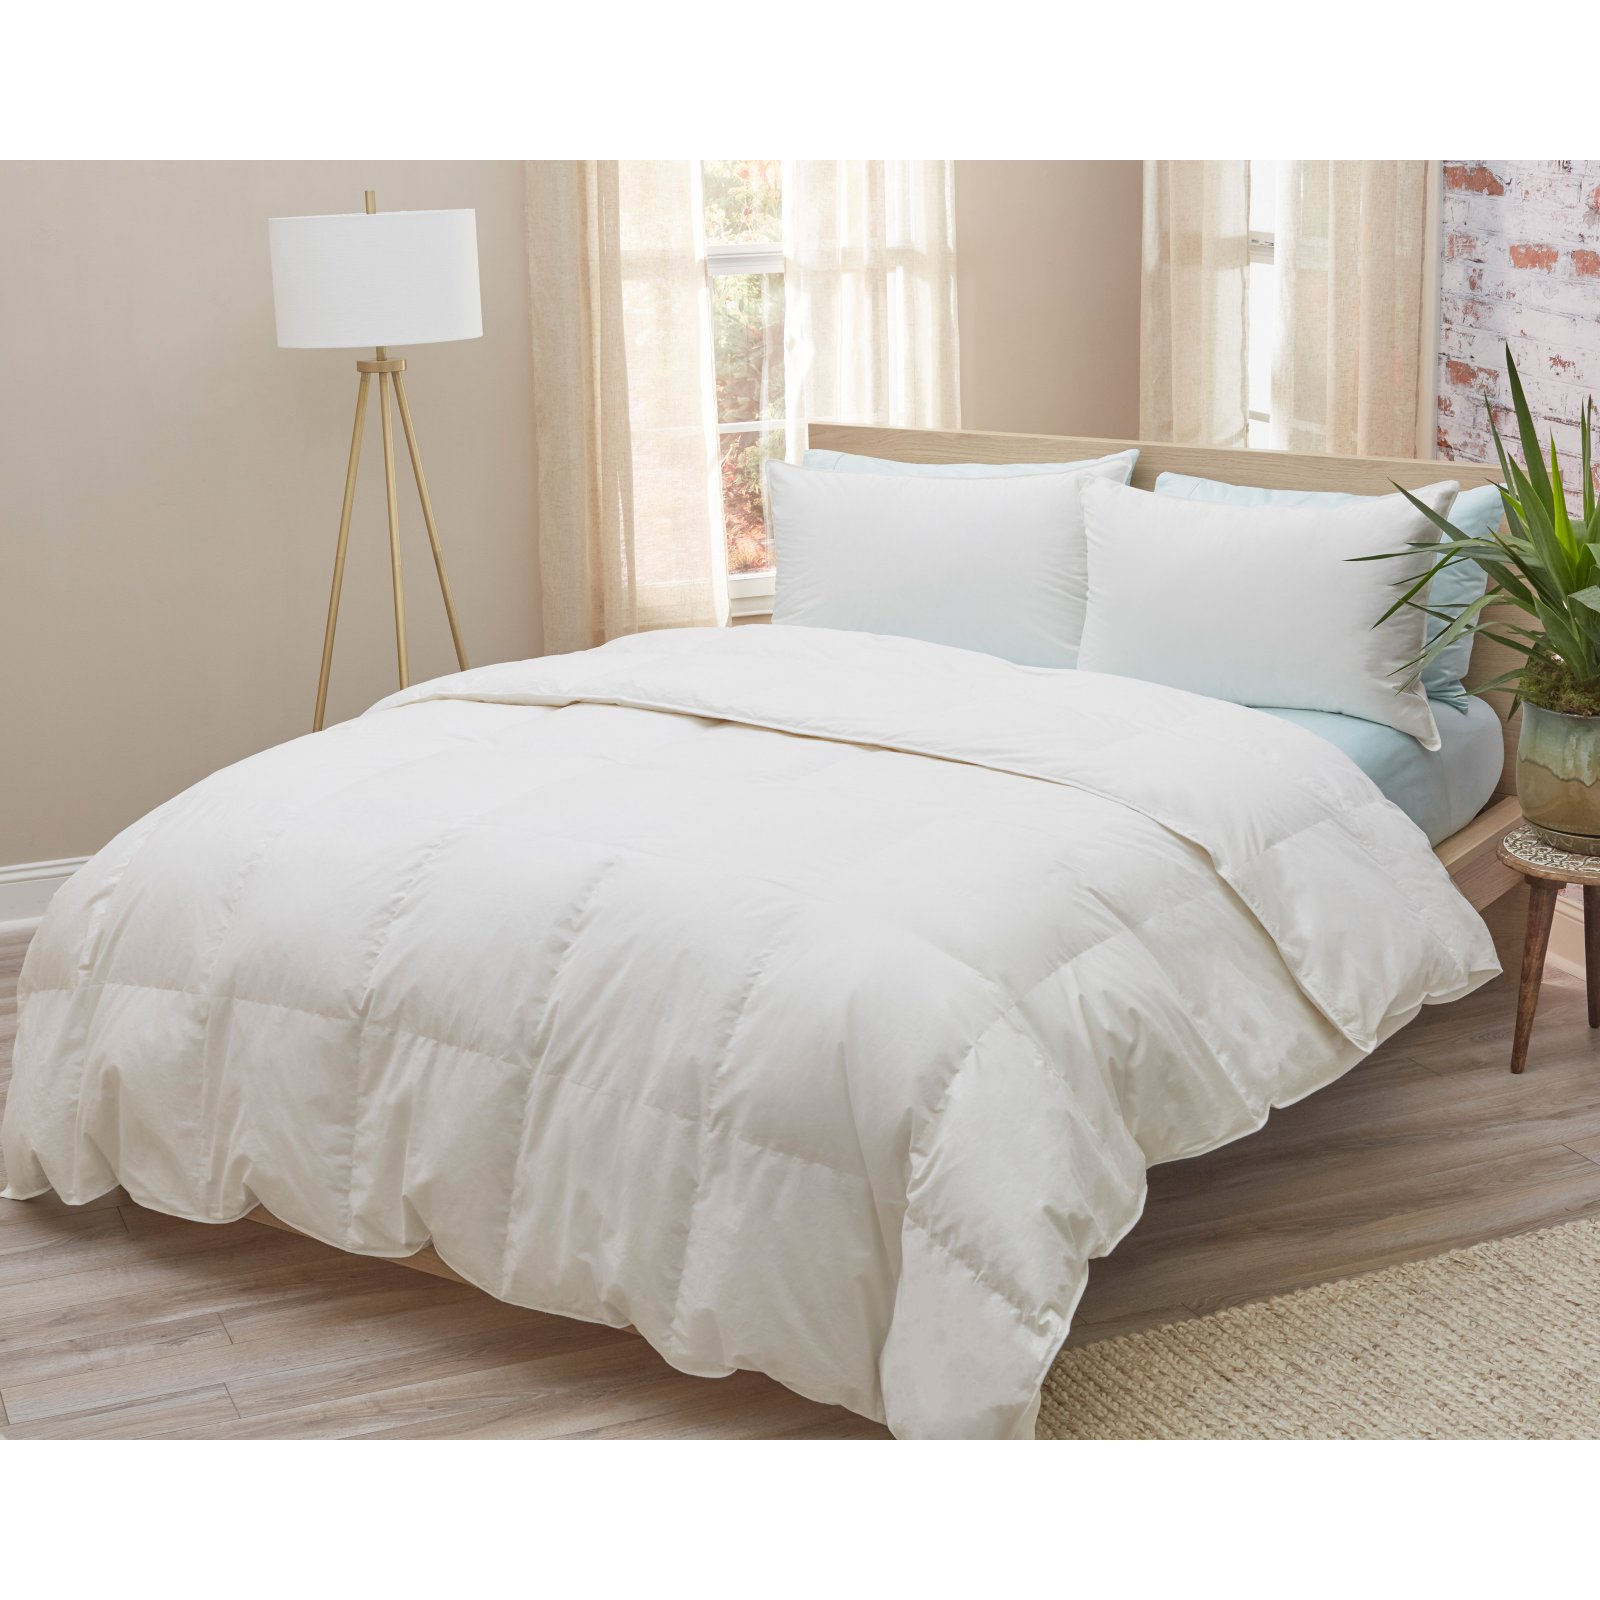 Amberly Bedding White Down Comforter - Summer Weight Twin